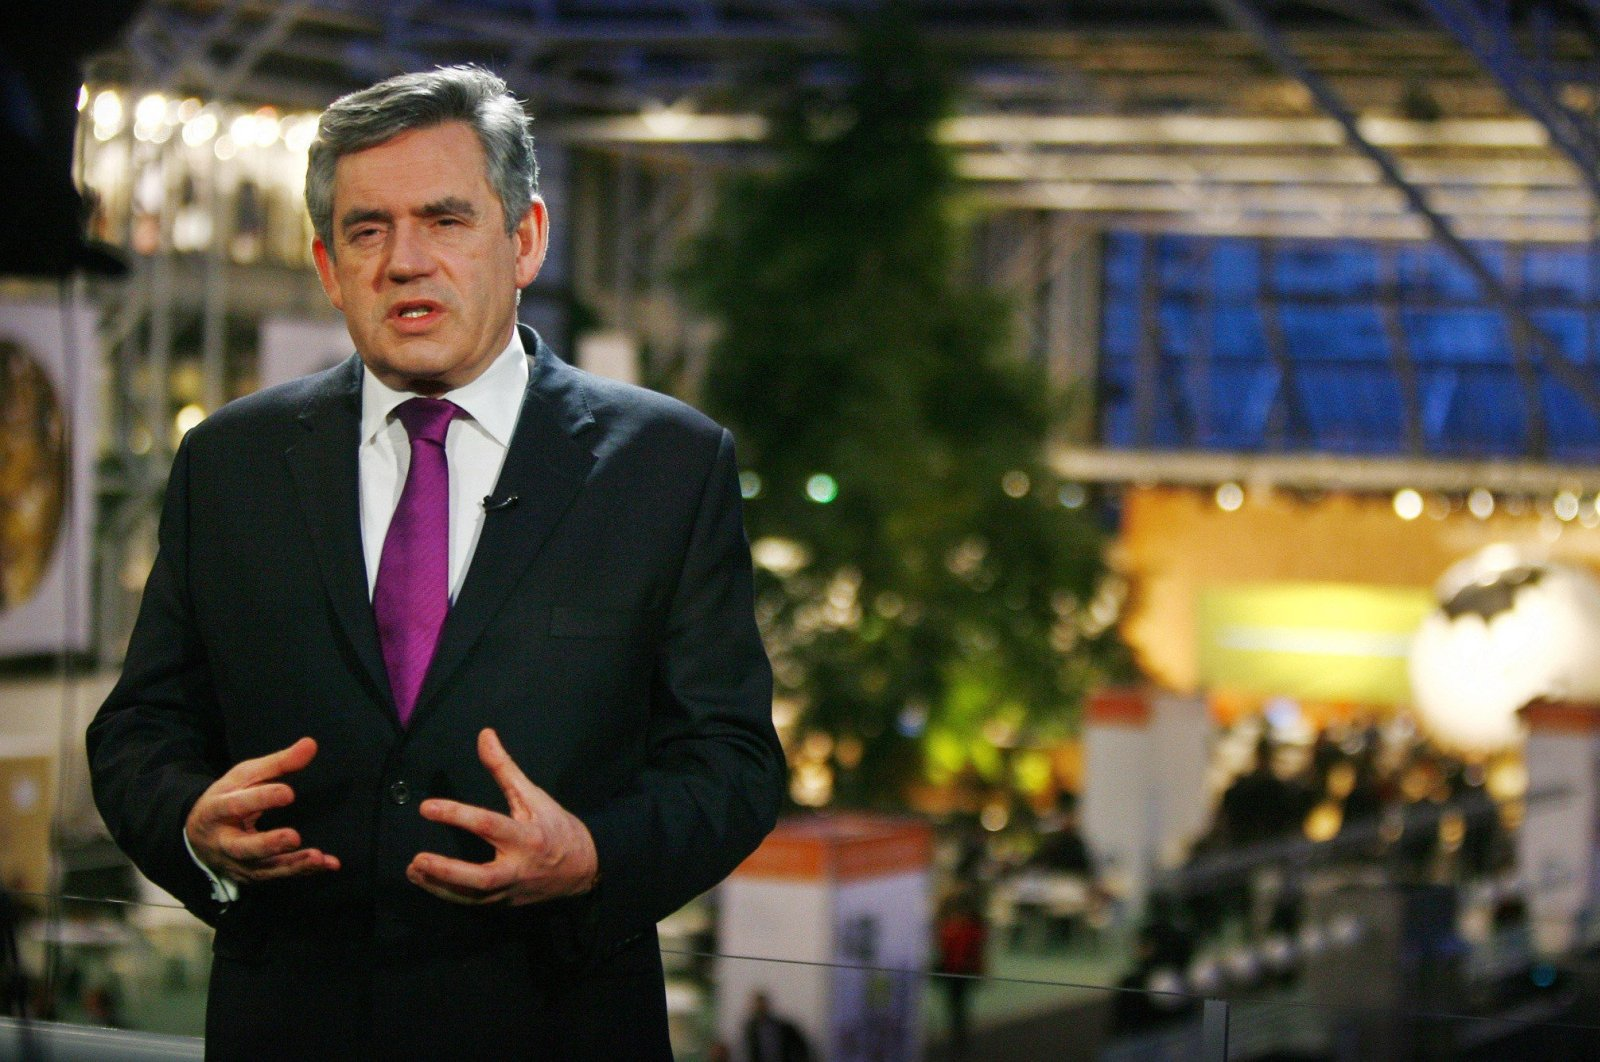 British Prime Minister Gordon Brown gives a television interview as he attends the U.N. Climate Change Conference 2009 in Copenhagen, Dec. 16, 2009. (Reuters Photo)